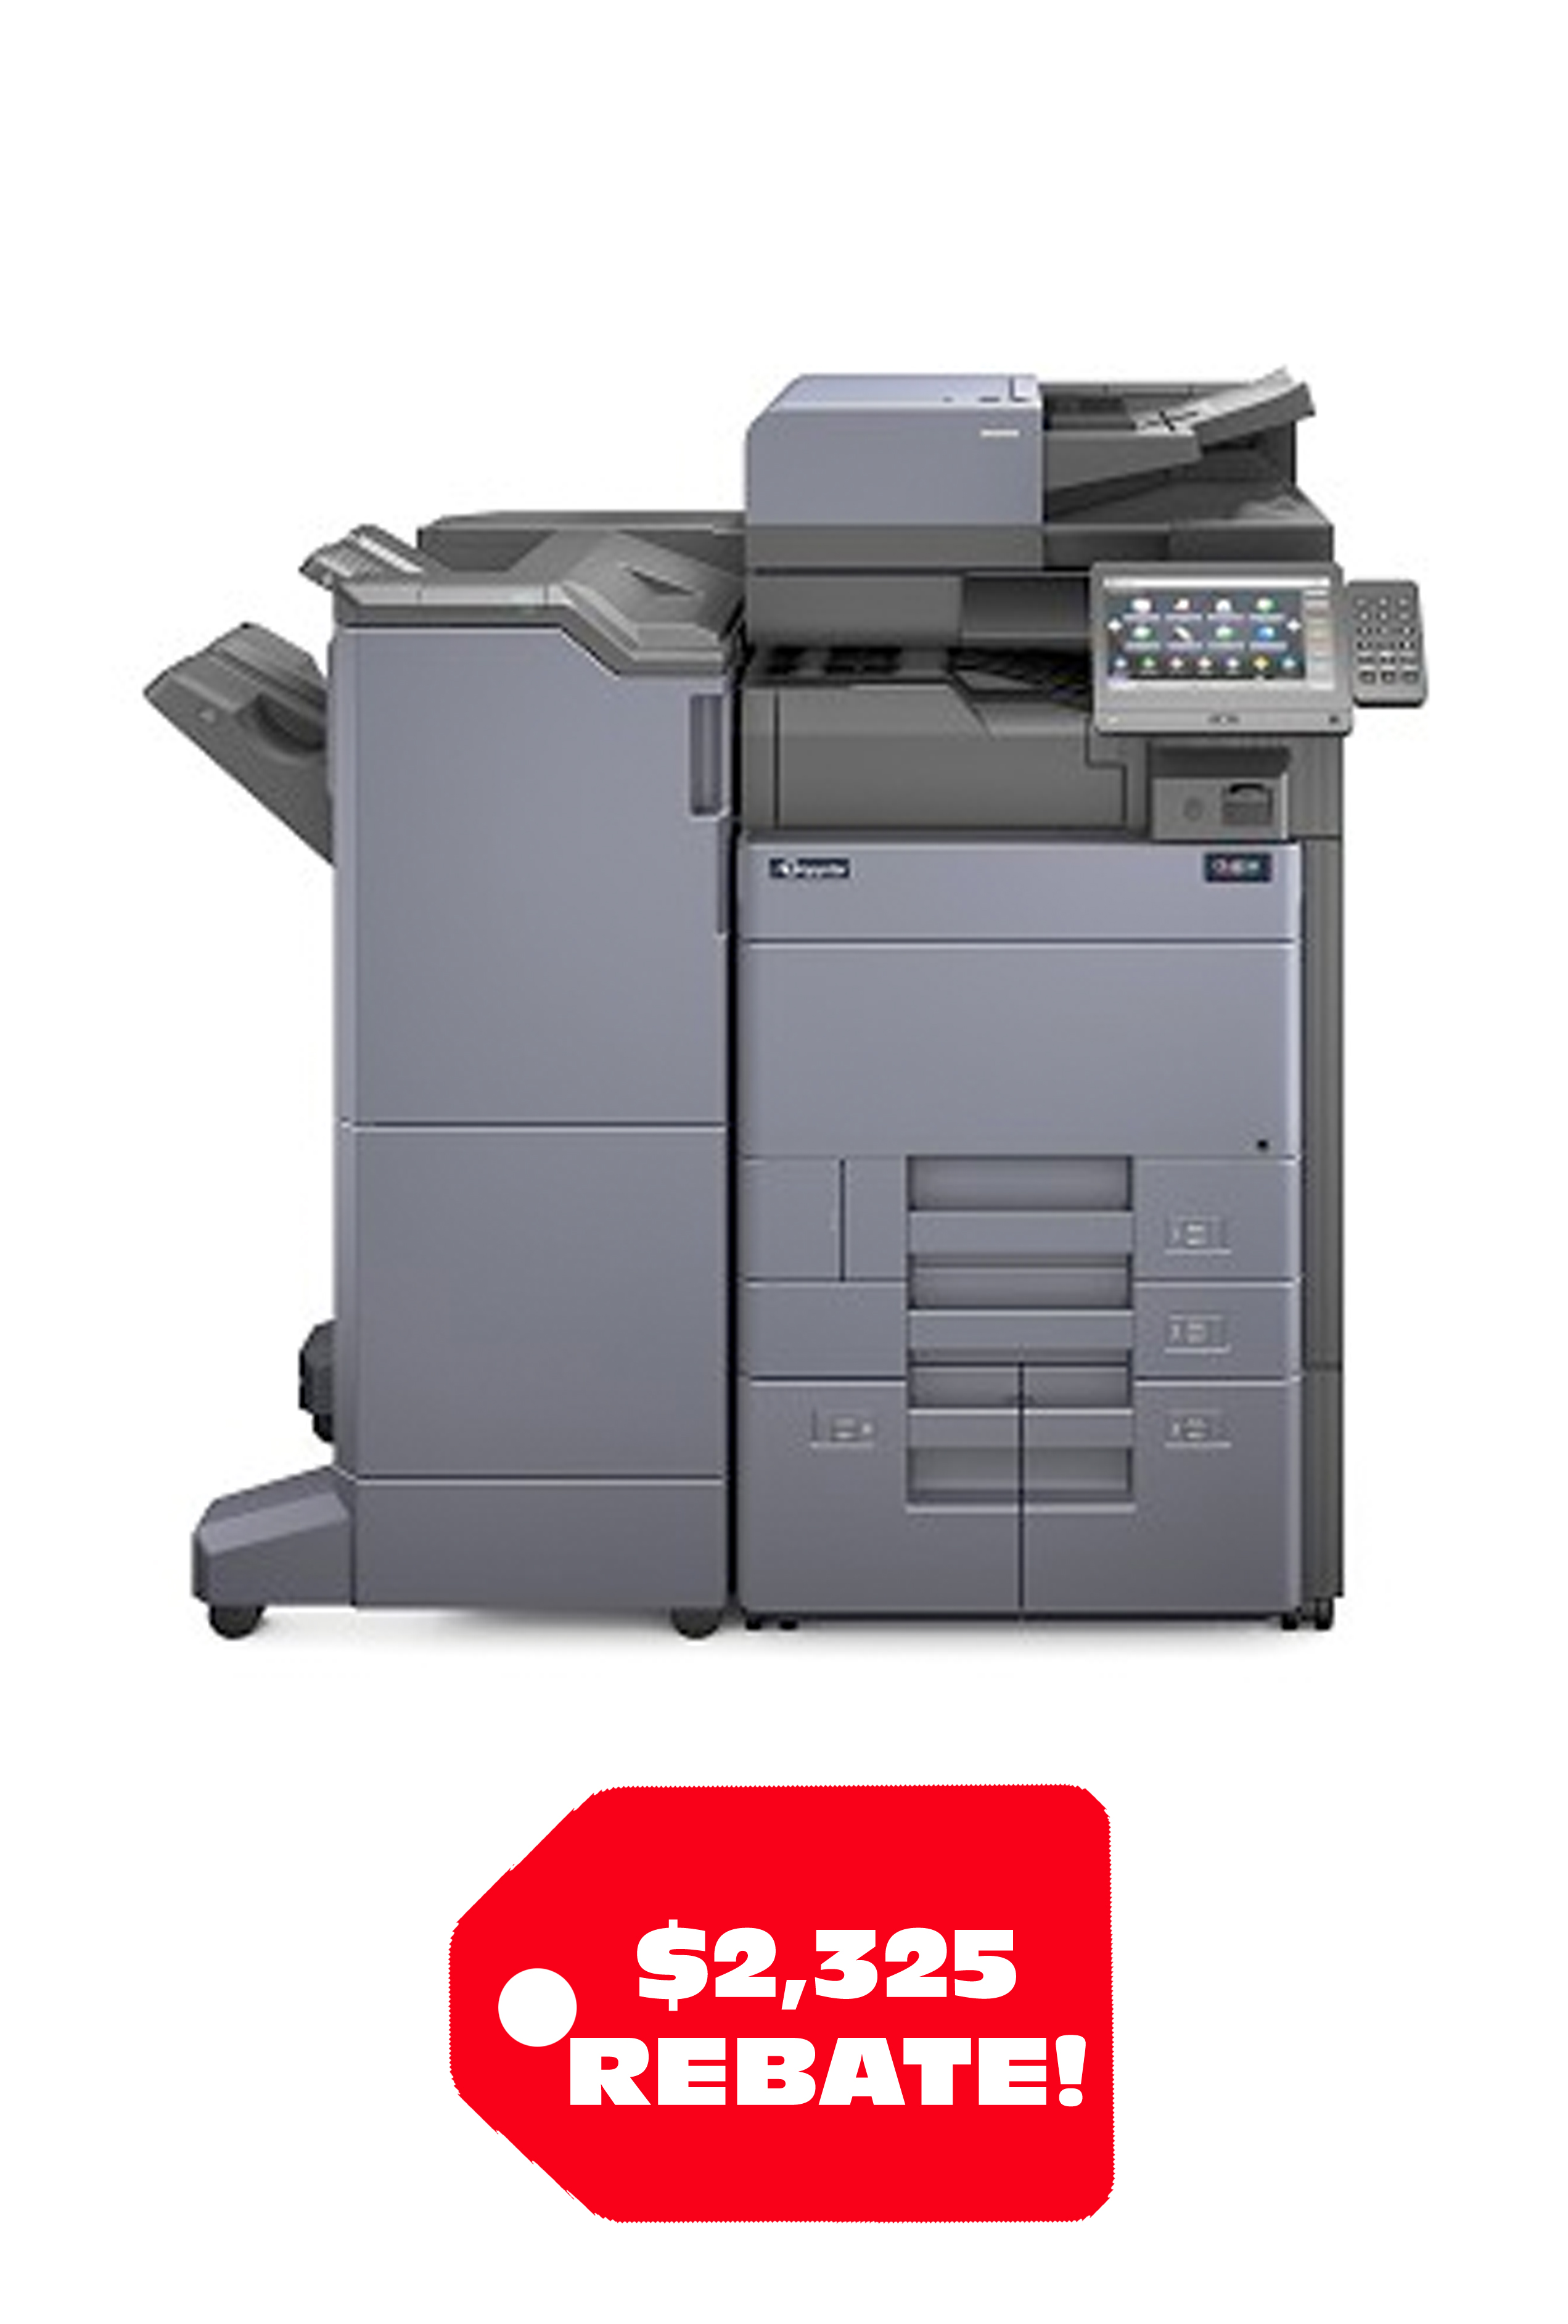 Copystar COPYSTAR CS-6053ci (60/55 PPM) A3 Color MFP